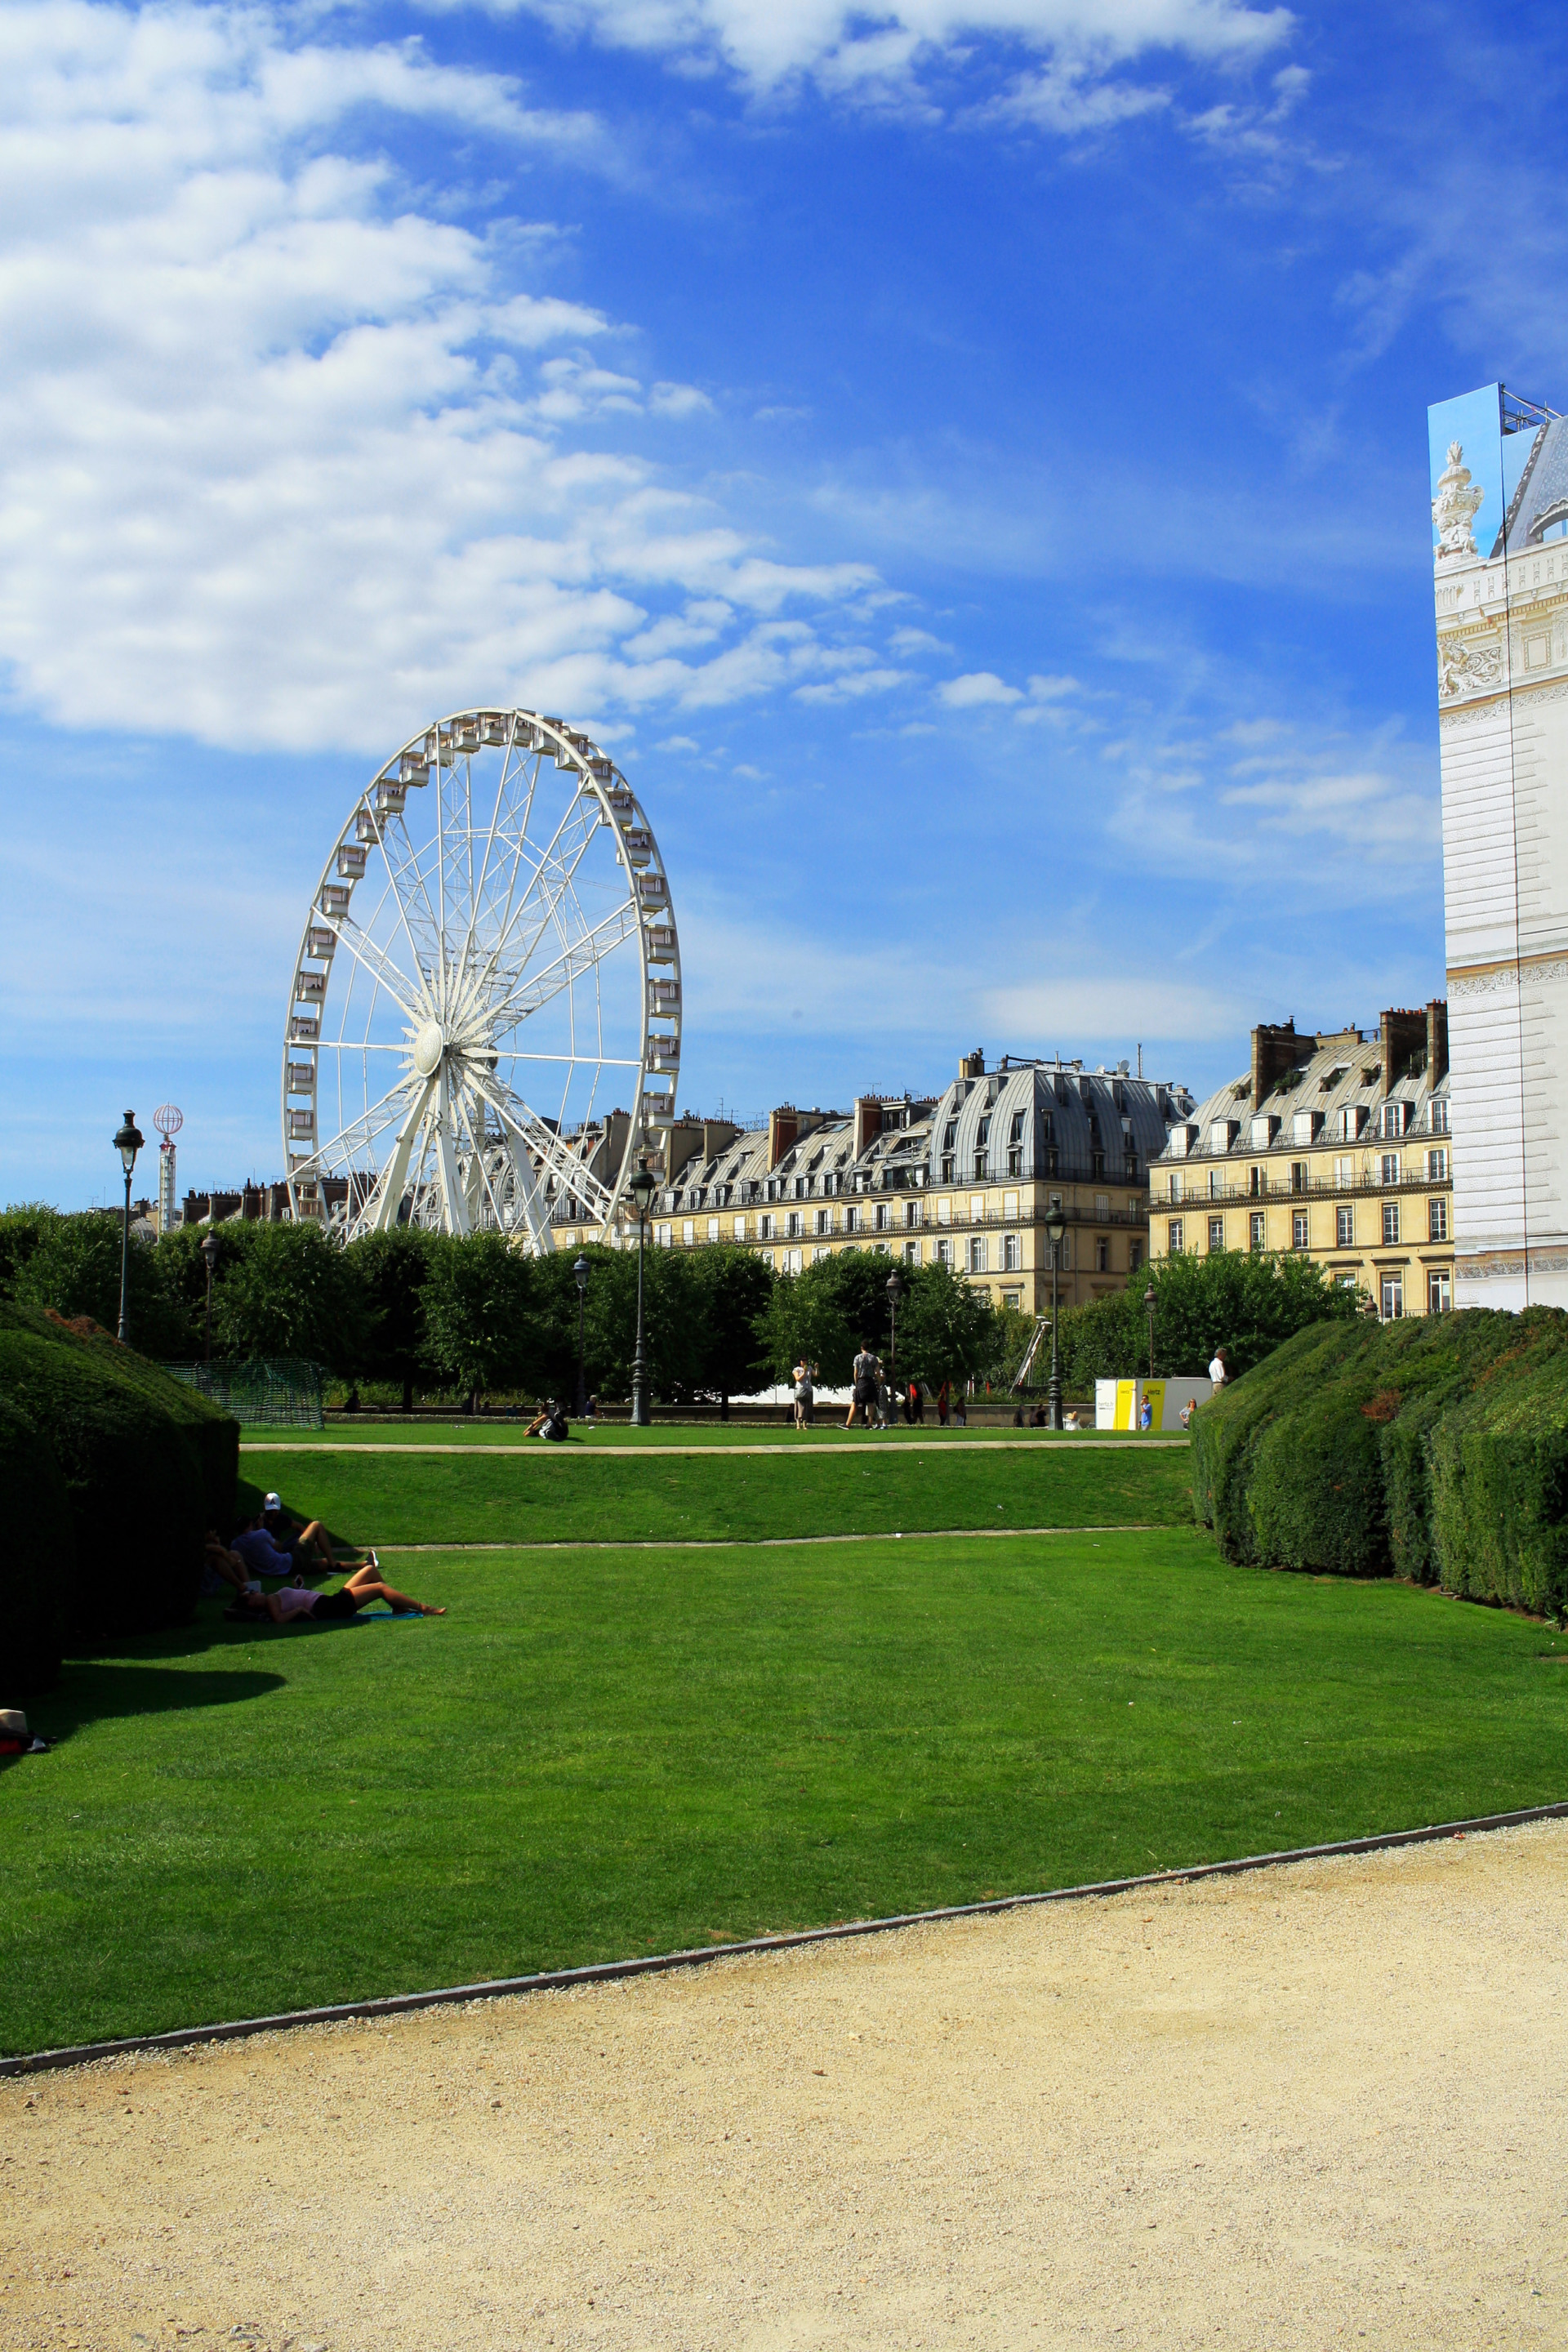 Städtetrip: 48 Stunden in Paris mit Kindern // Travel to Paris with Kids by http://babyrockmyday.com/staedtetrip-paris-mit-kindern/